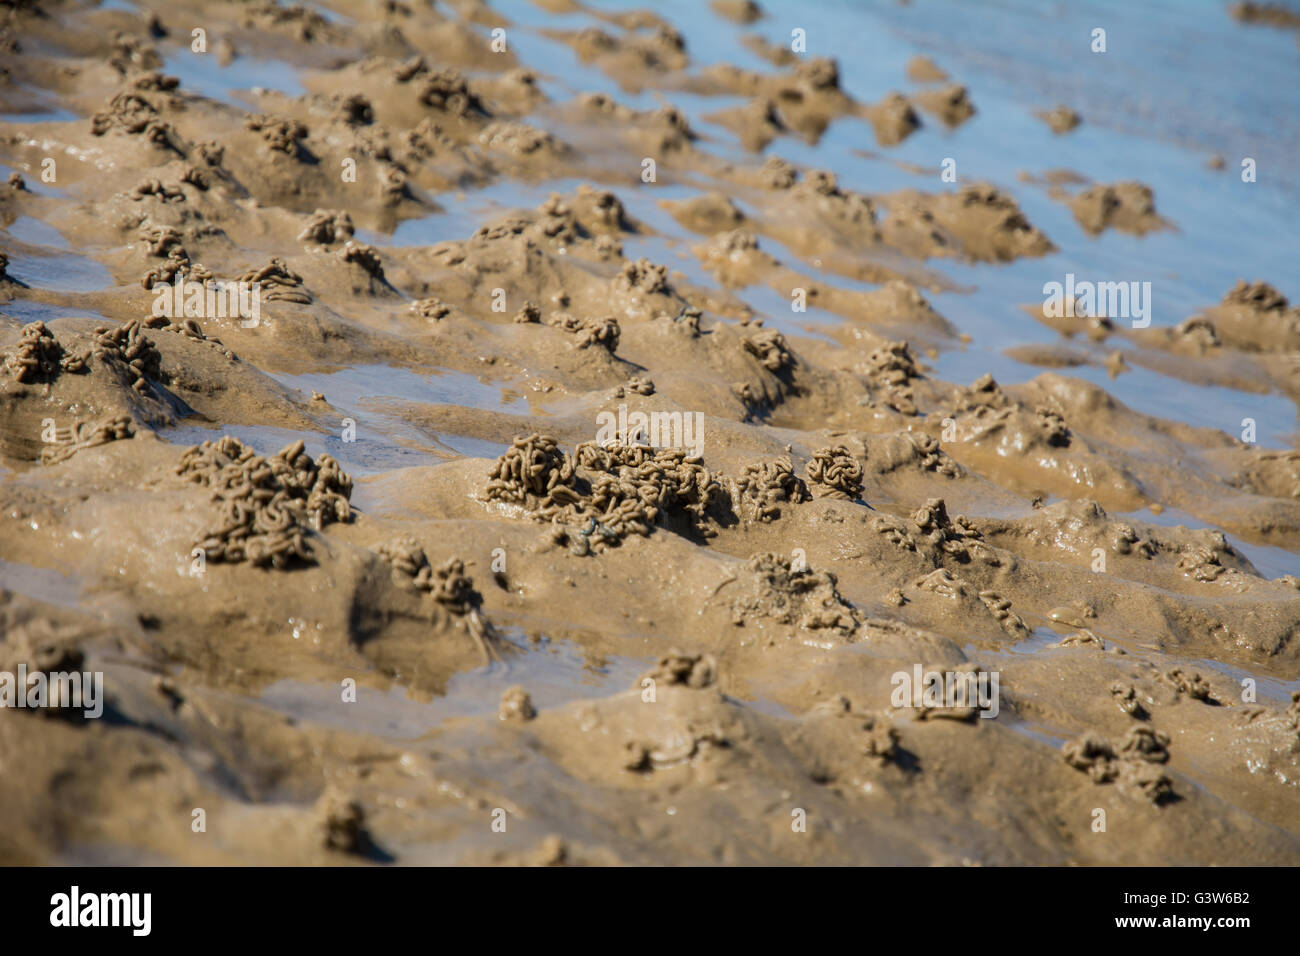 Worm castings on the sand from lugworms. - Stock Image